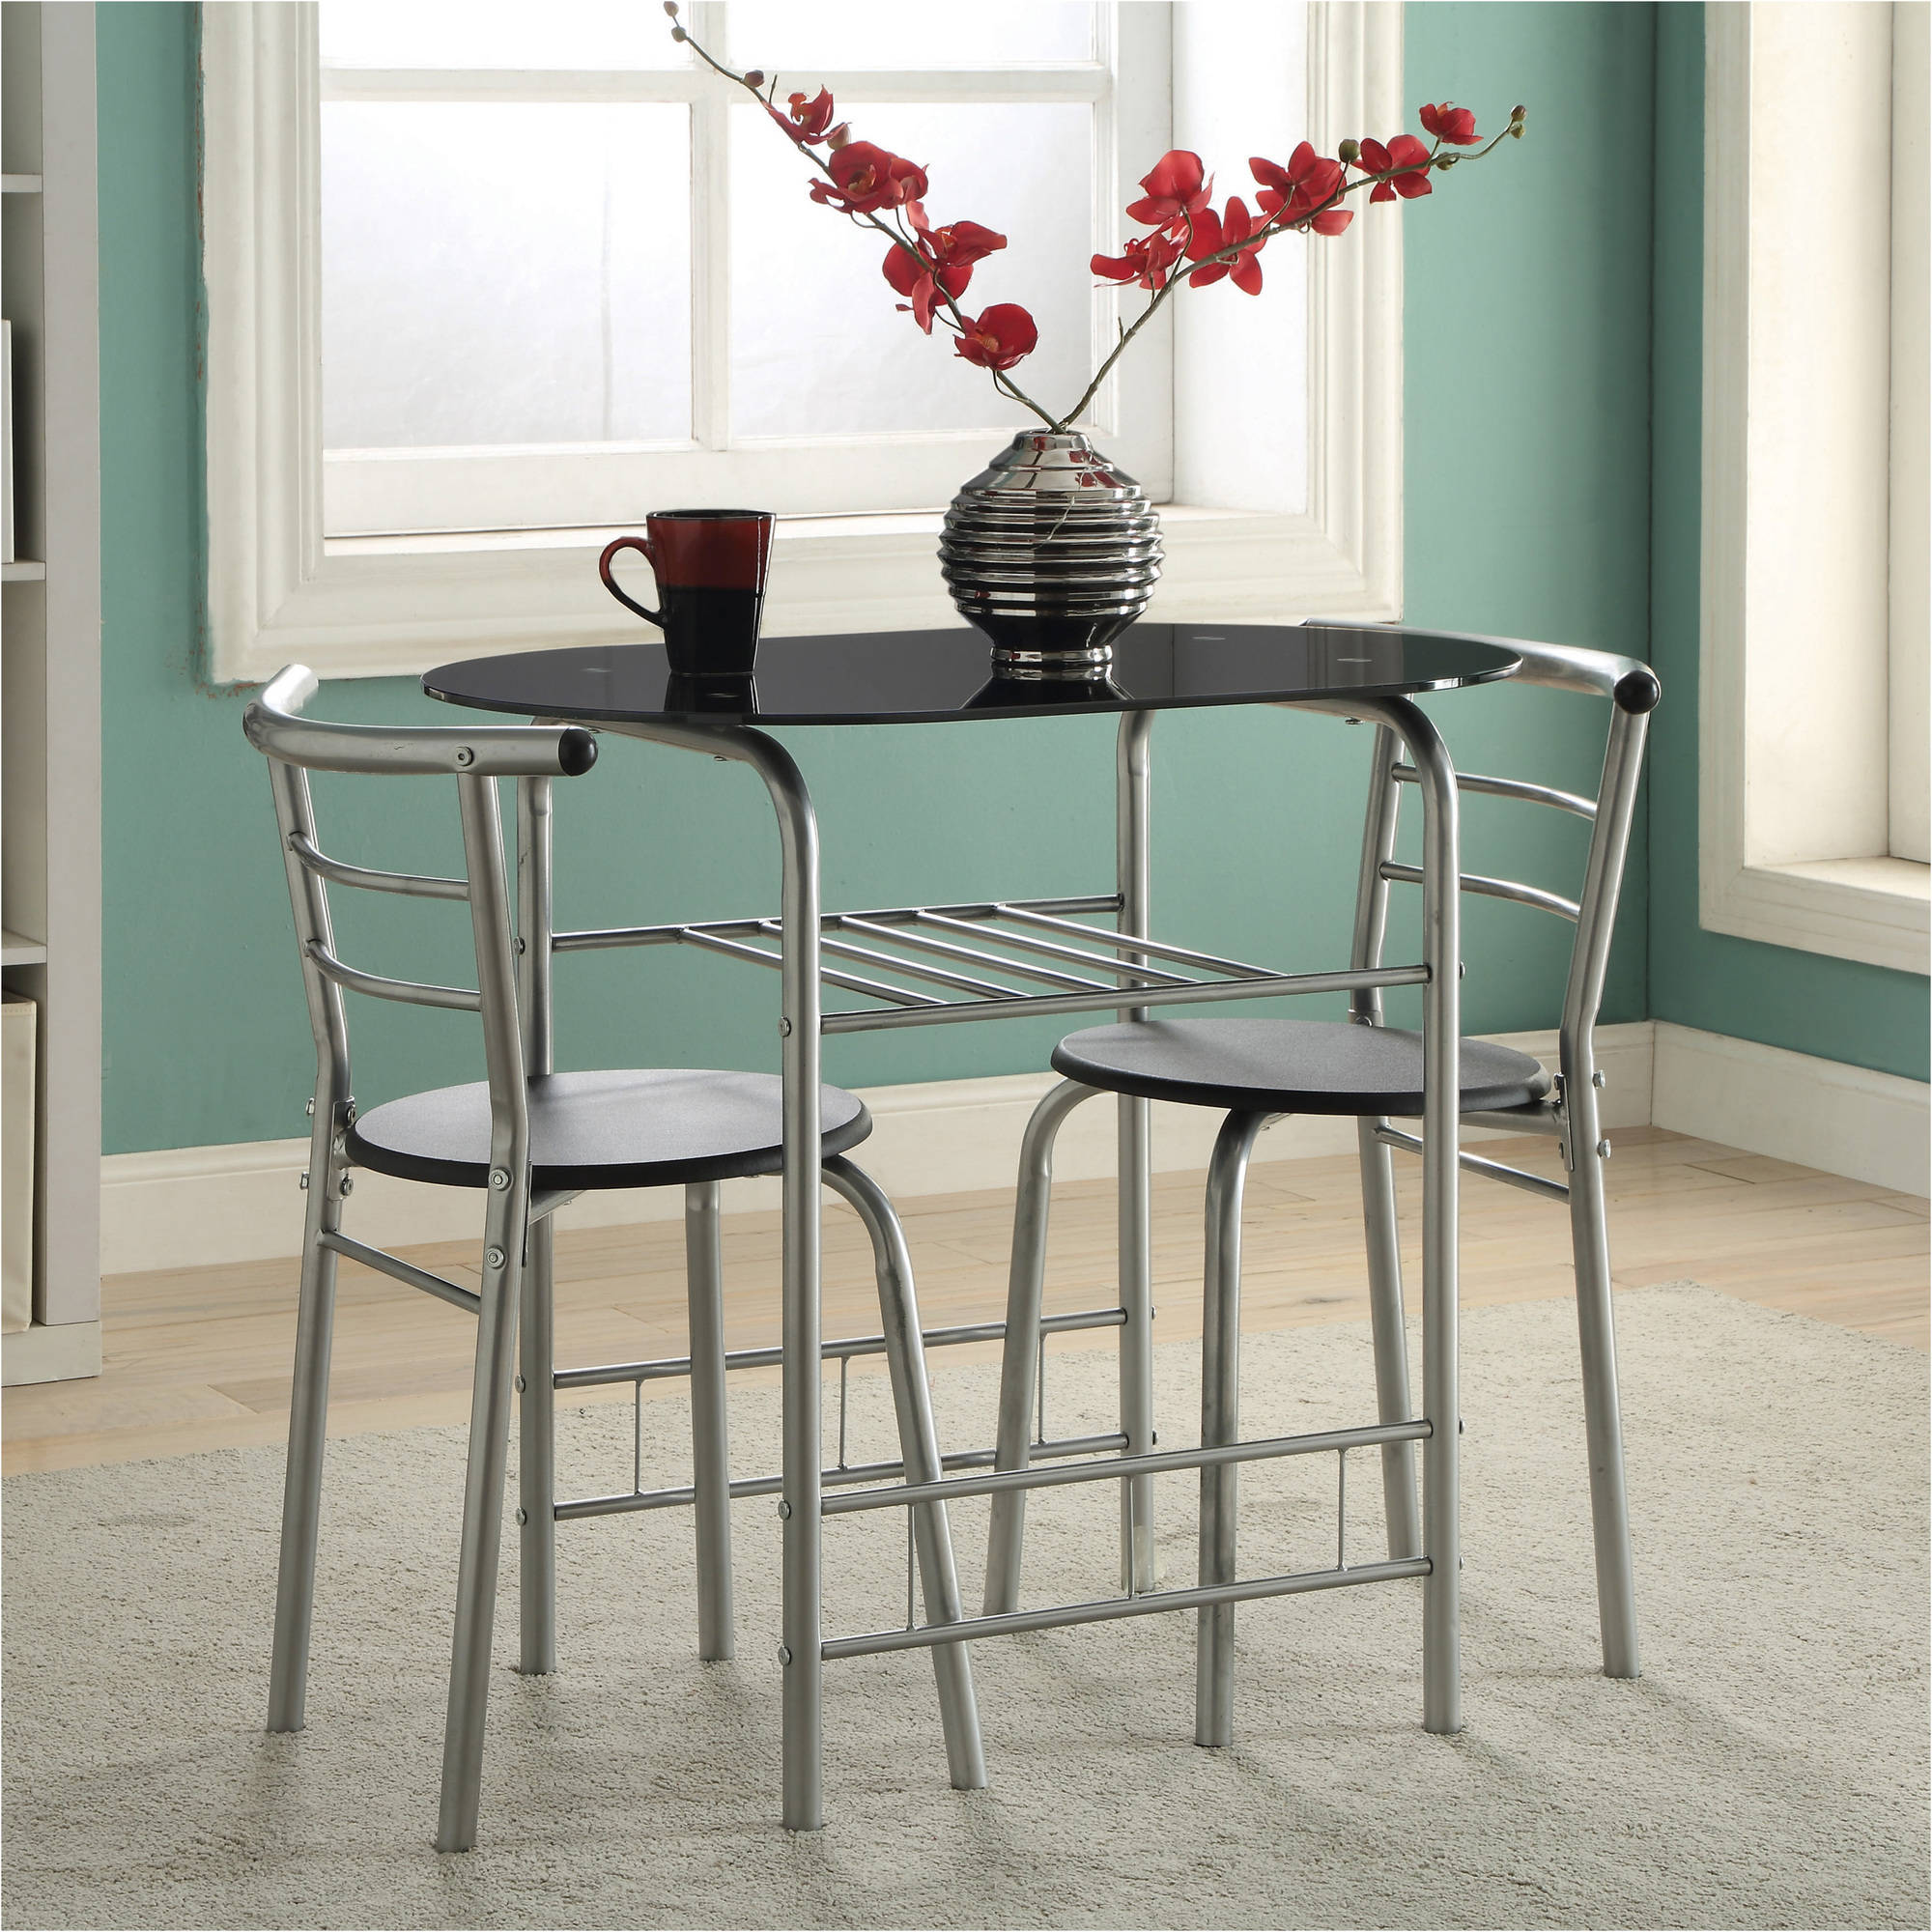 Charmant Coaster 3 Piece Dinette Set, Multiple Colors